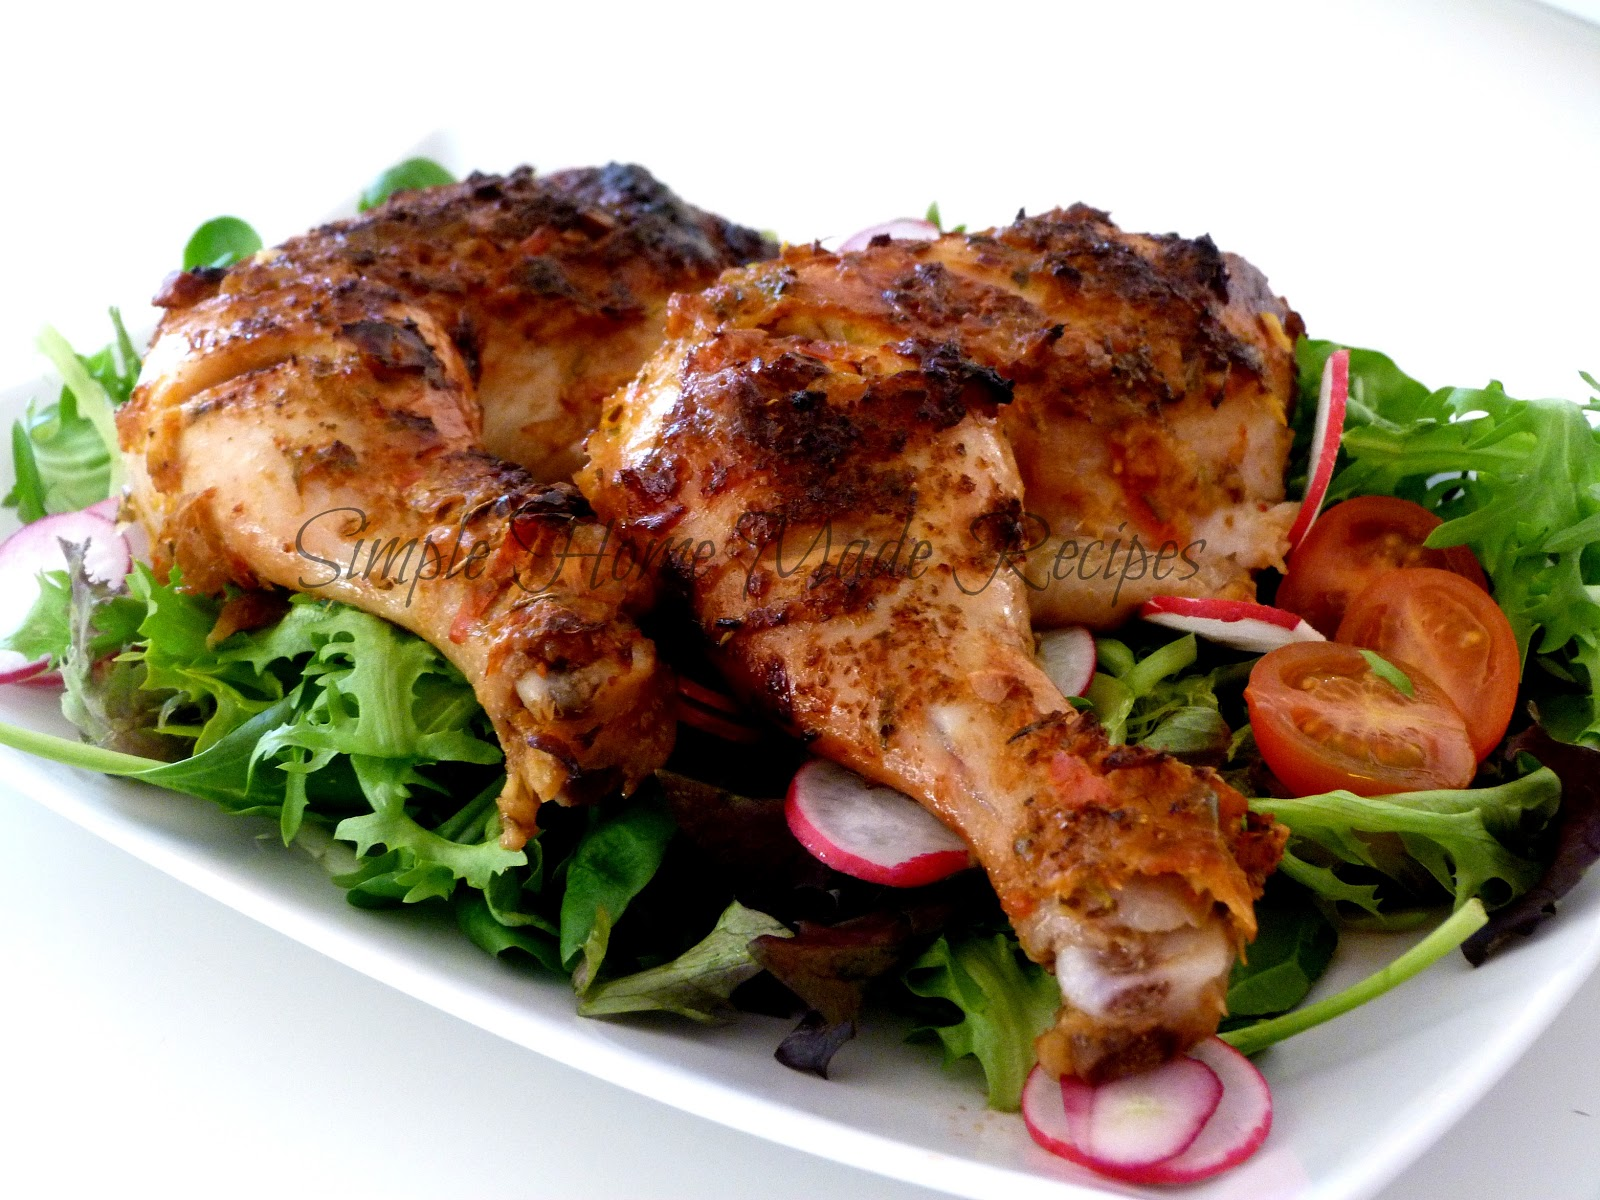 Simple Spicy Oven Baked Chicken Legs